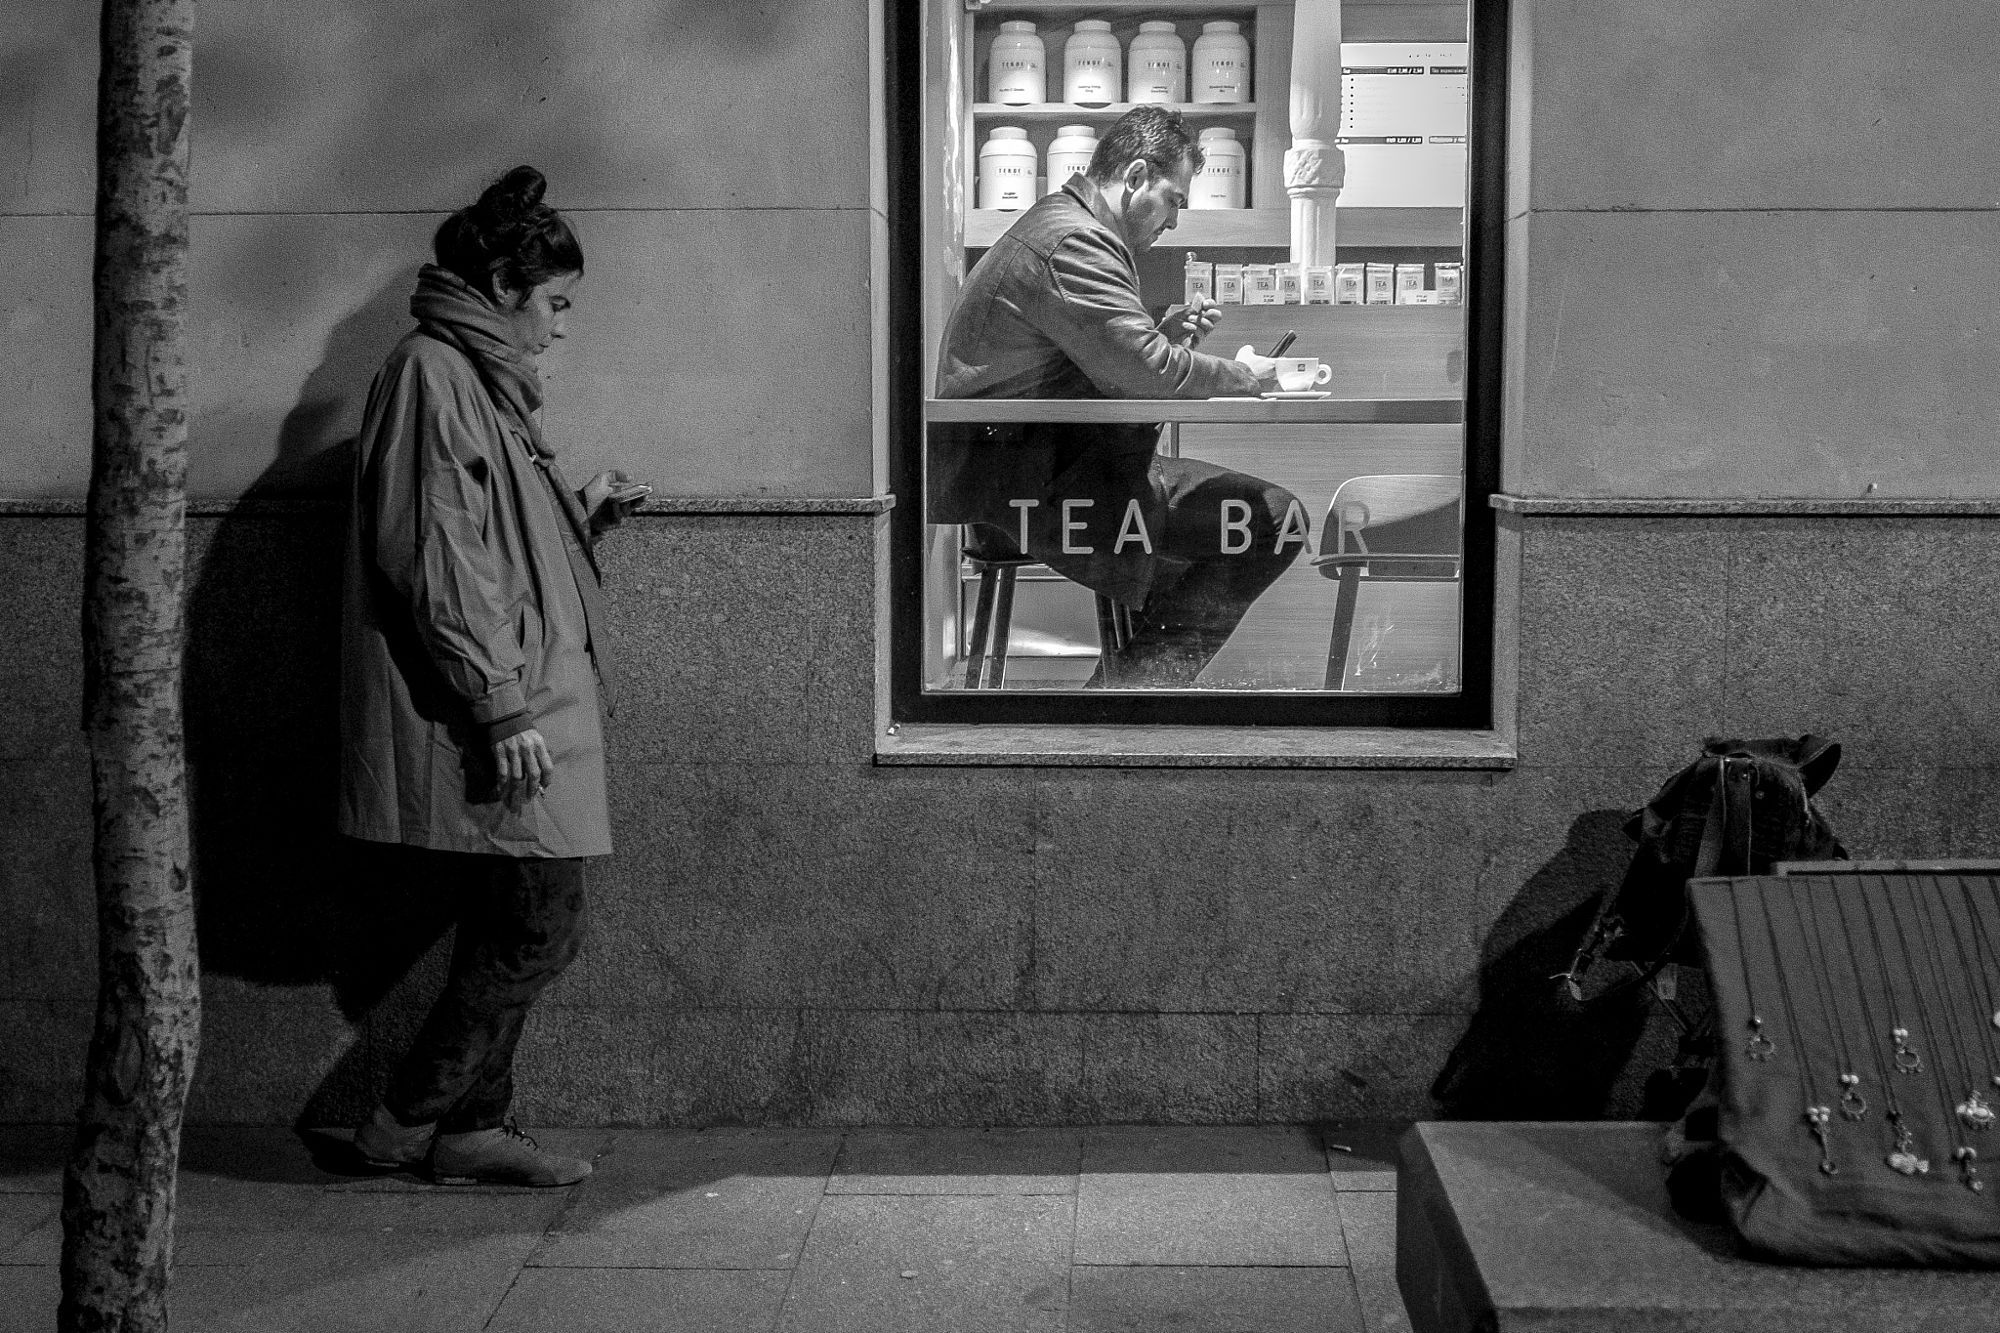 Street Photography : The same by AndreaRatto https://t.co/tdzqEEBzQB | #streets #photography #photos #500px https://t.co/iPTJkpDCcw #foll #photography